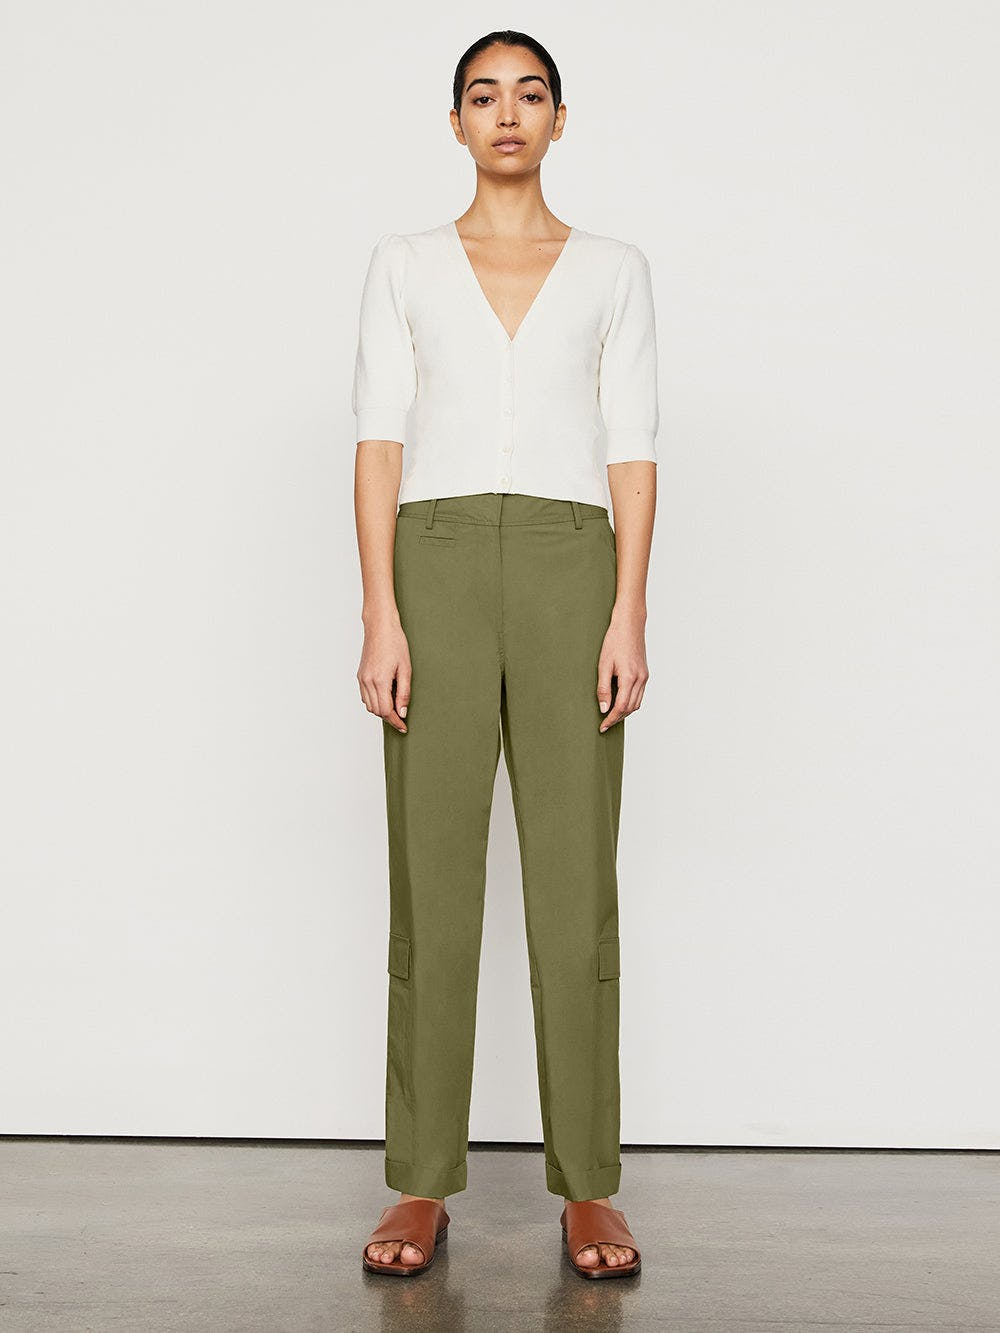 pant front full body view